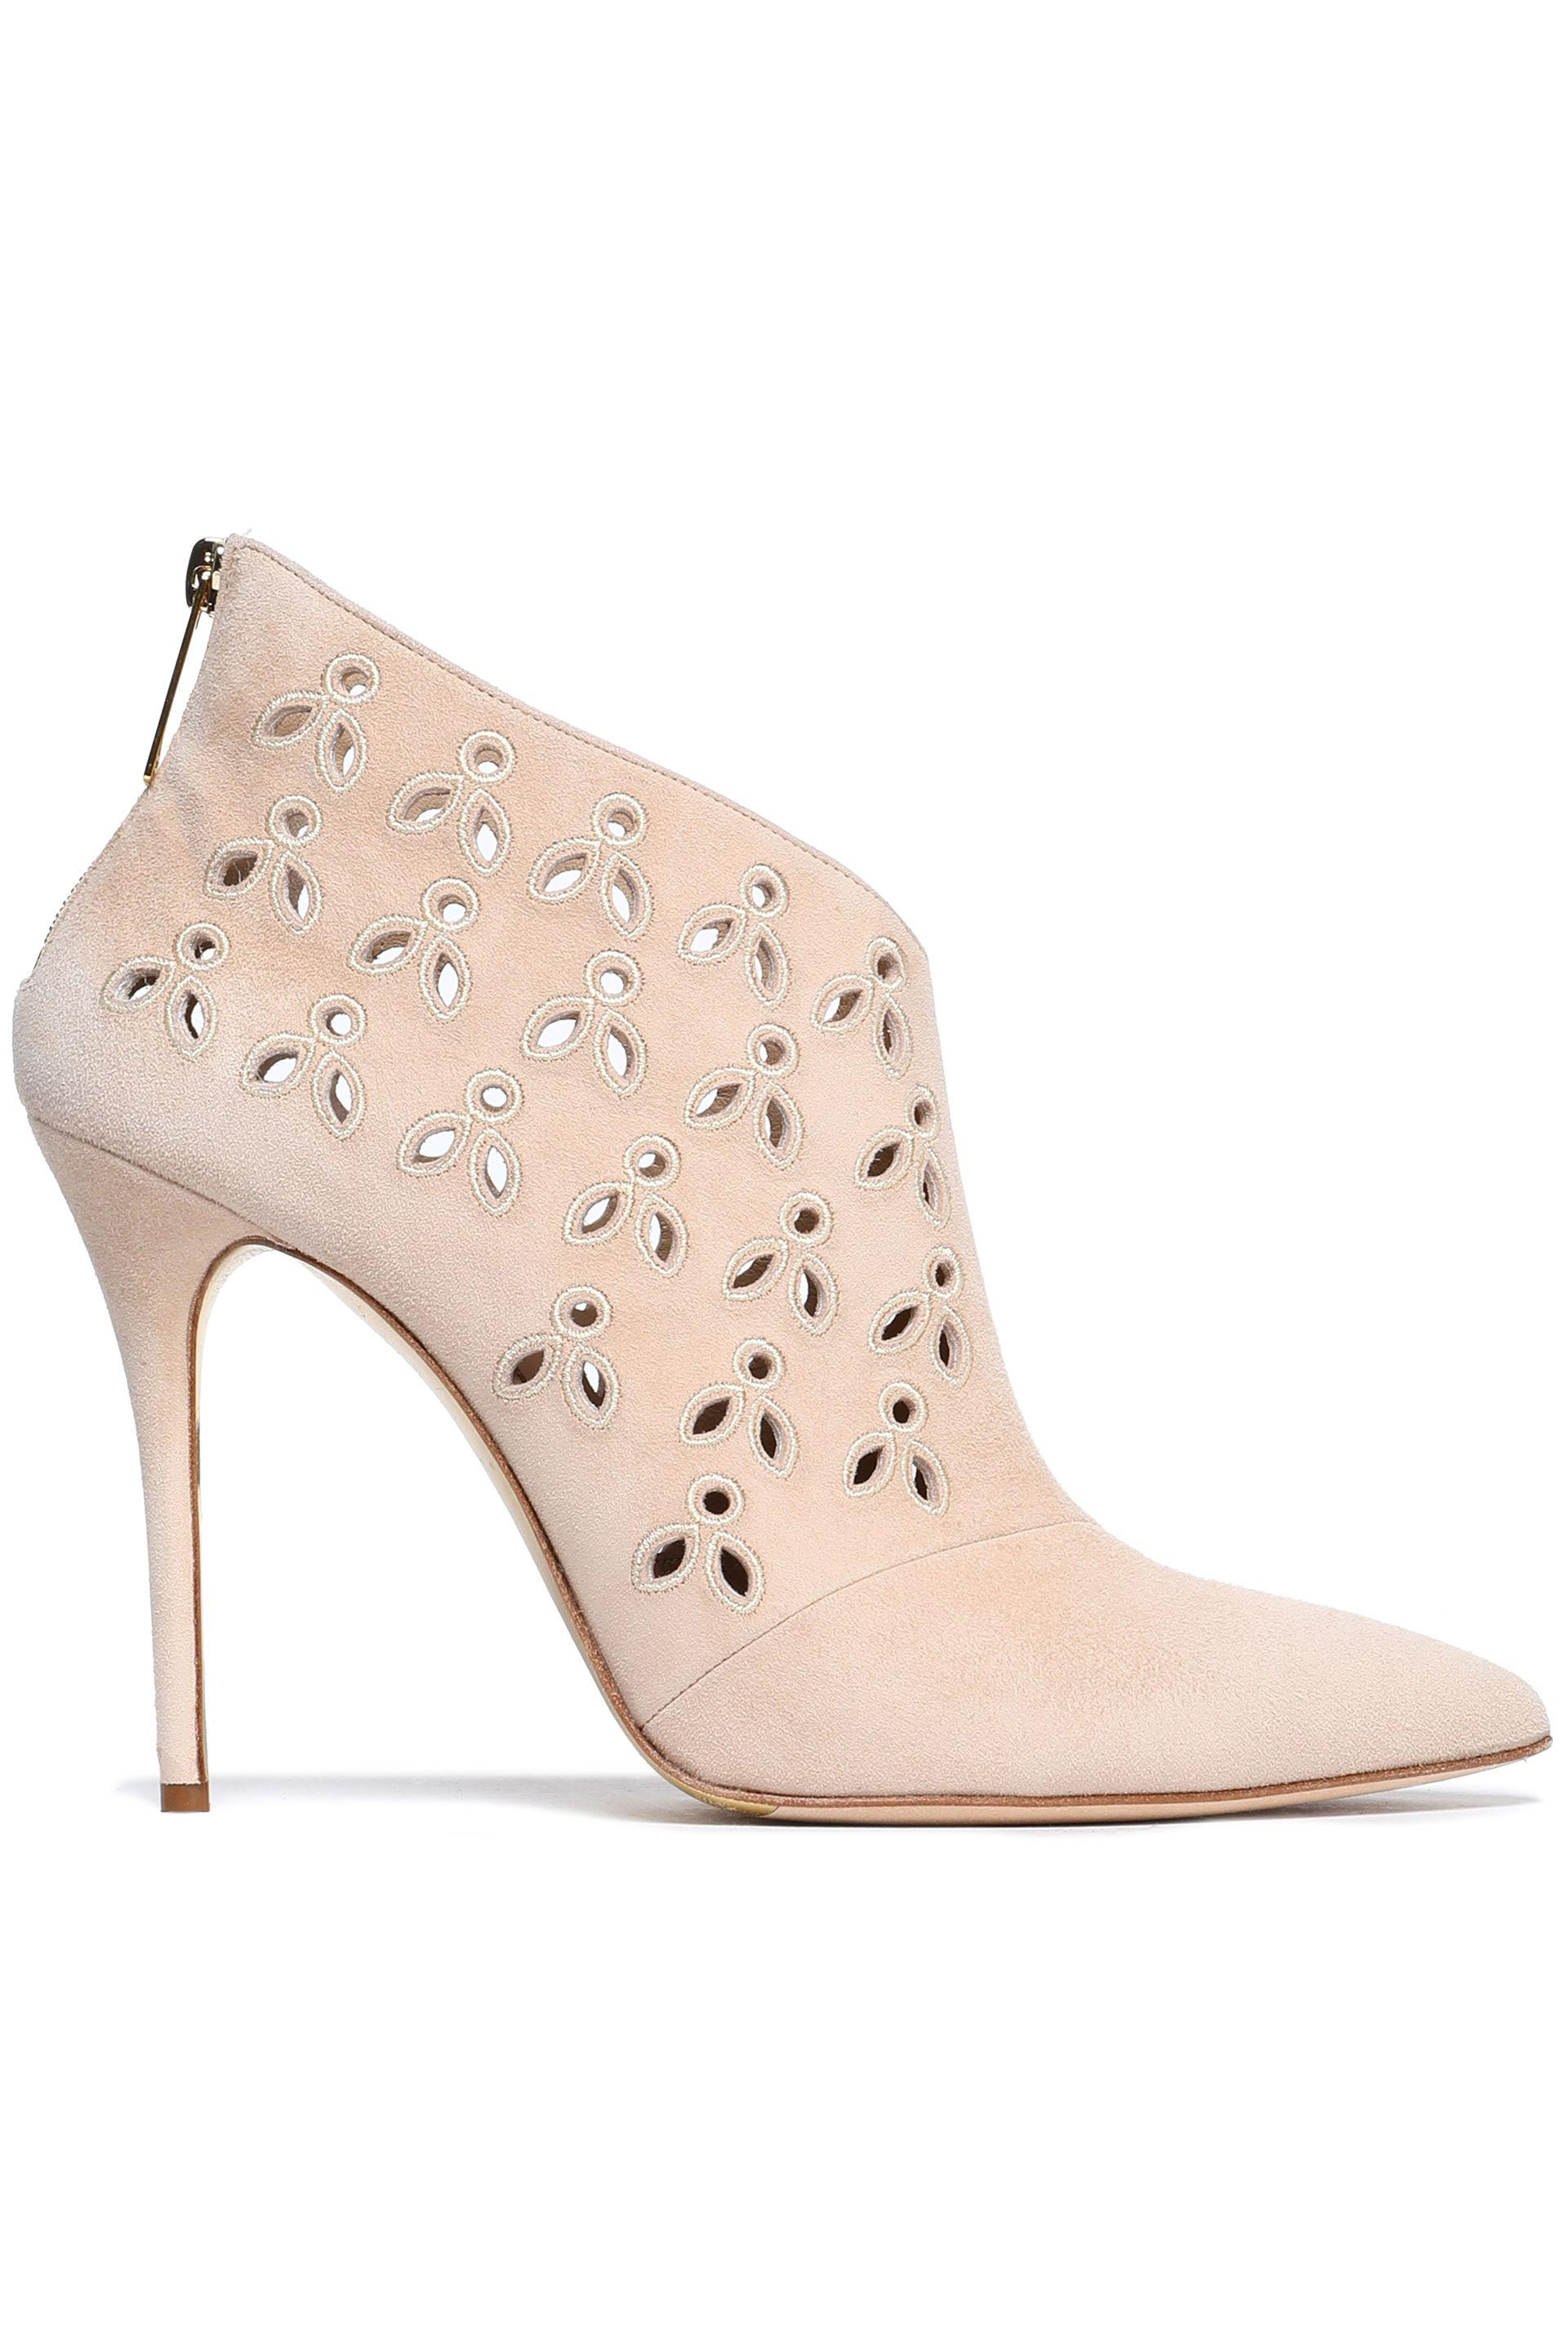 e26c665fd94 Oscar de la Renta Cutout Embroidered Suede Ankle Boots in Natural - Lyst